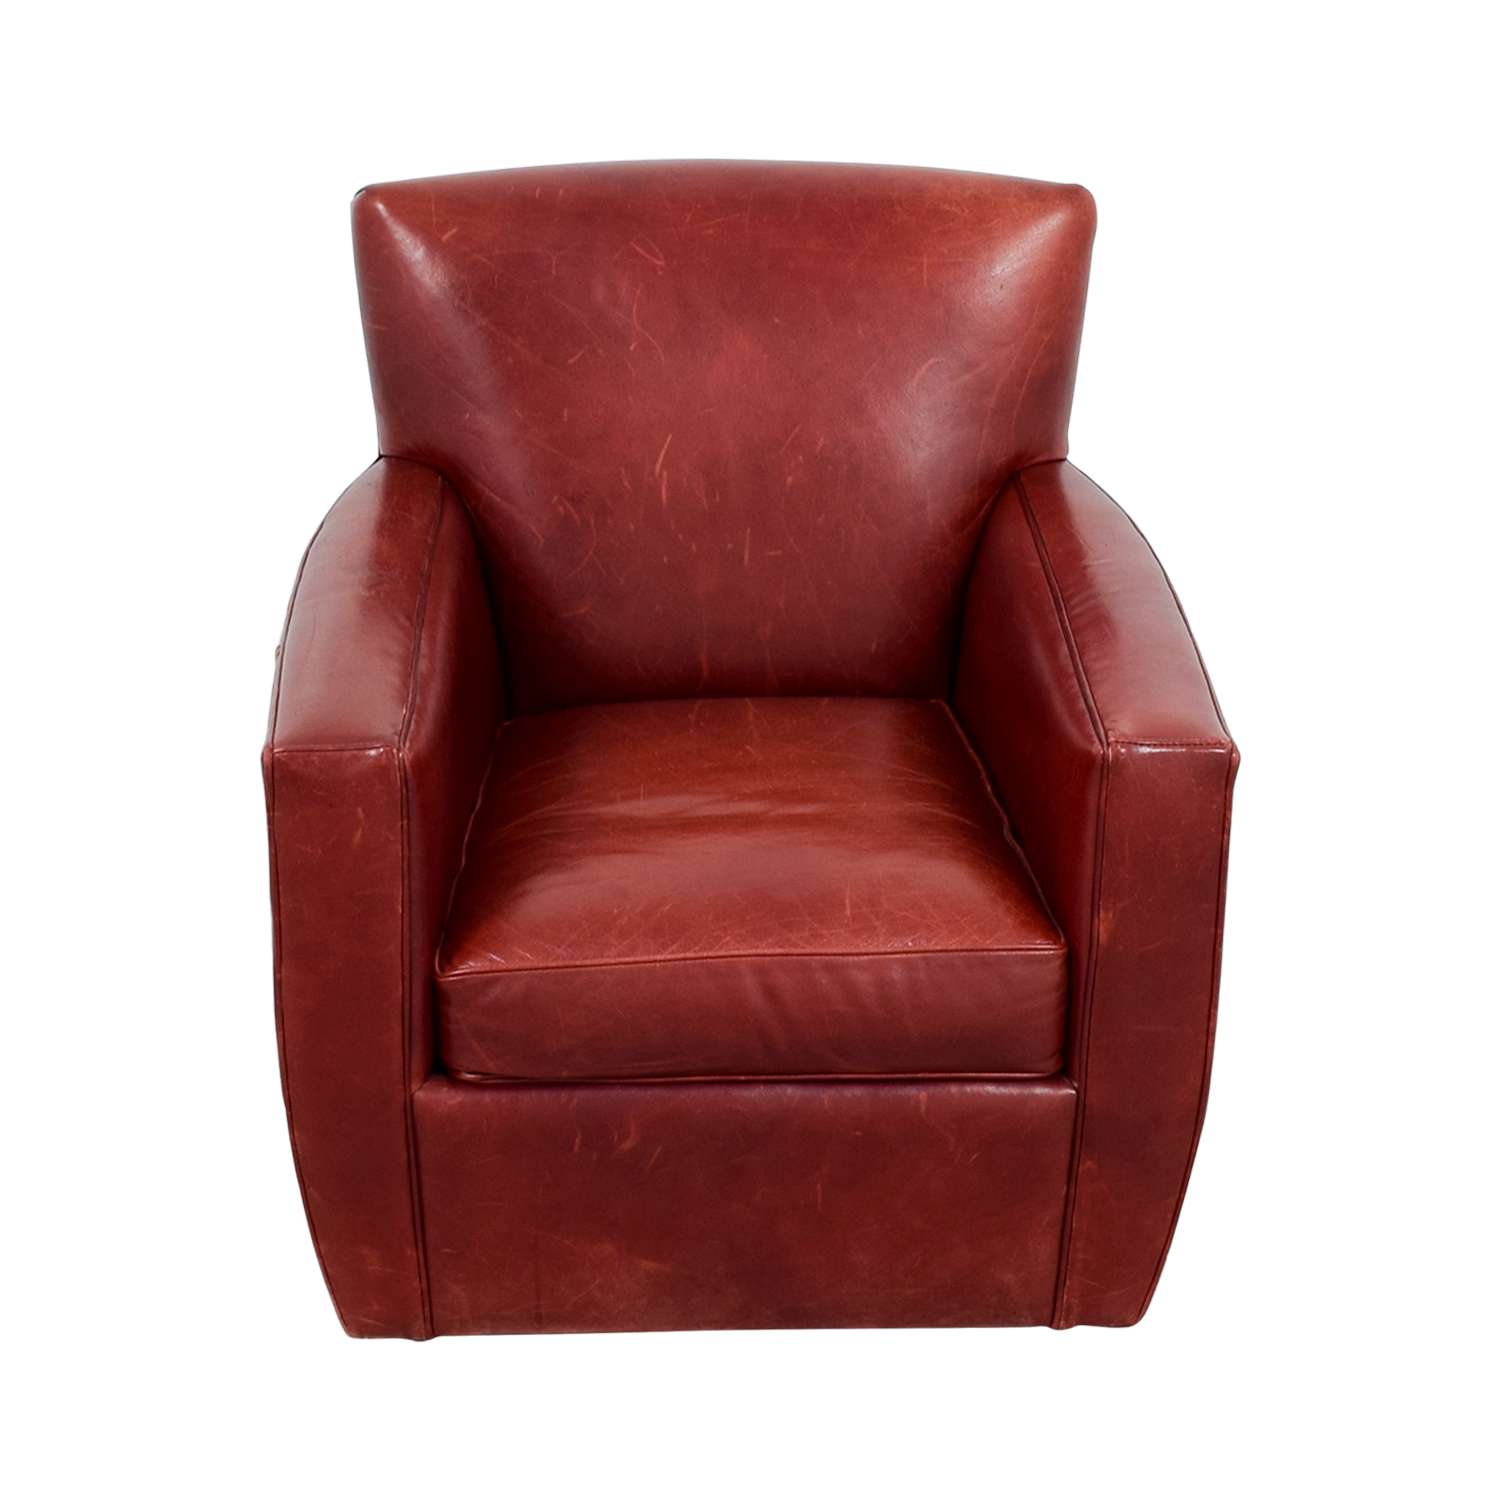 Admirable 79 Off Crate Barrel Crate Barrel Leather Swivel Chair Chairs Uwap Interior Chair Design Uwaporg